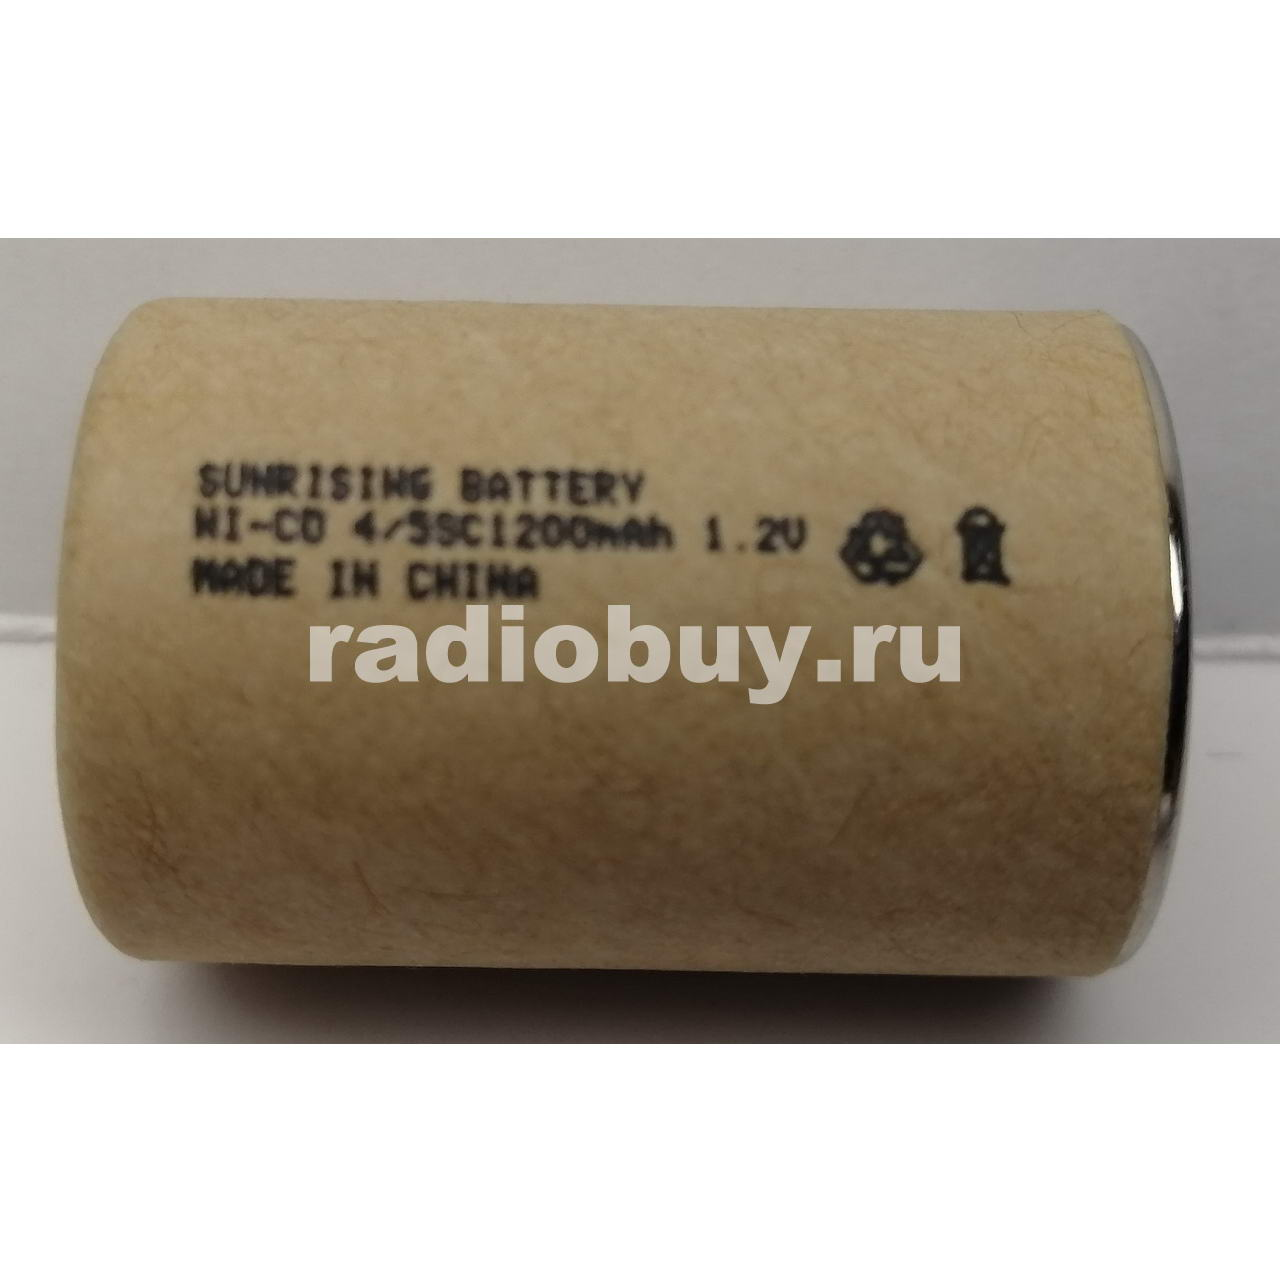 Аккумулятор Sunrising Ni-Cd 4/5SC, 1200mAh, 10C